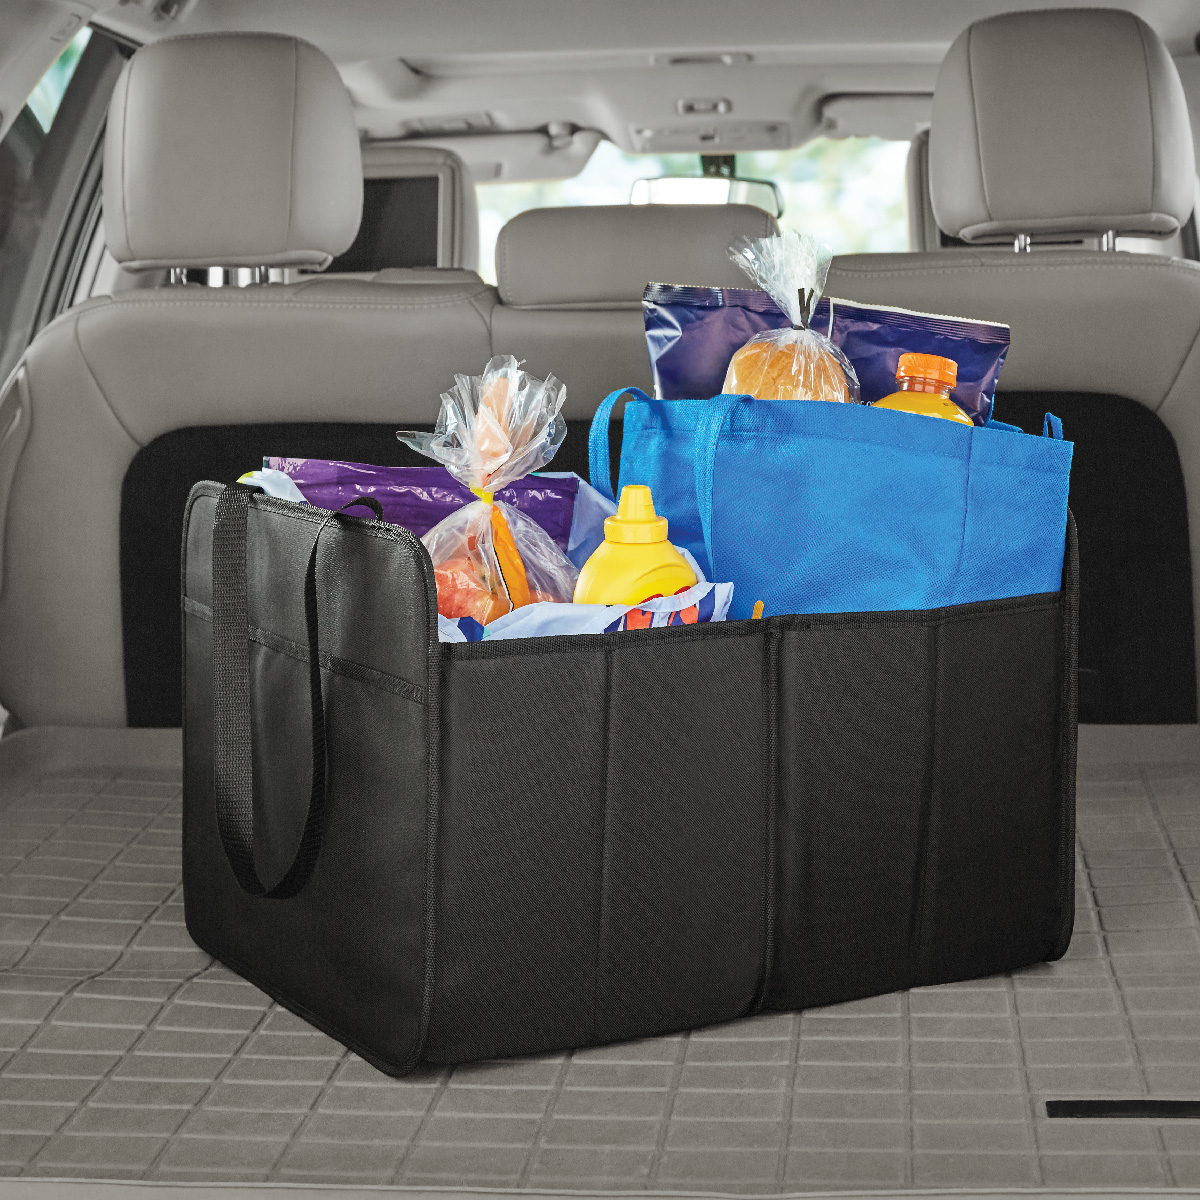 Auto Drive Black Hard-Sided Collapsible Trunk Organizer Product Size:18.5